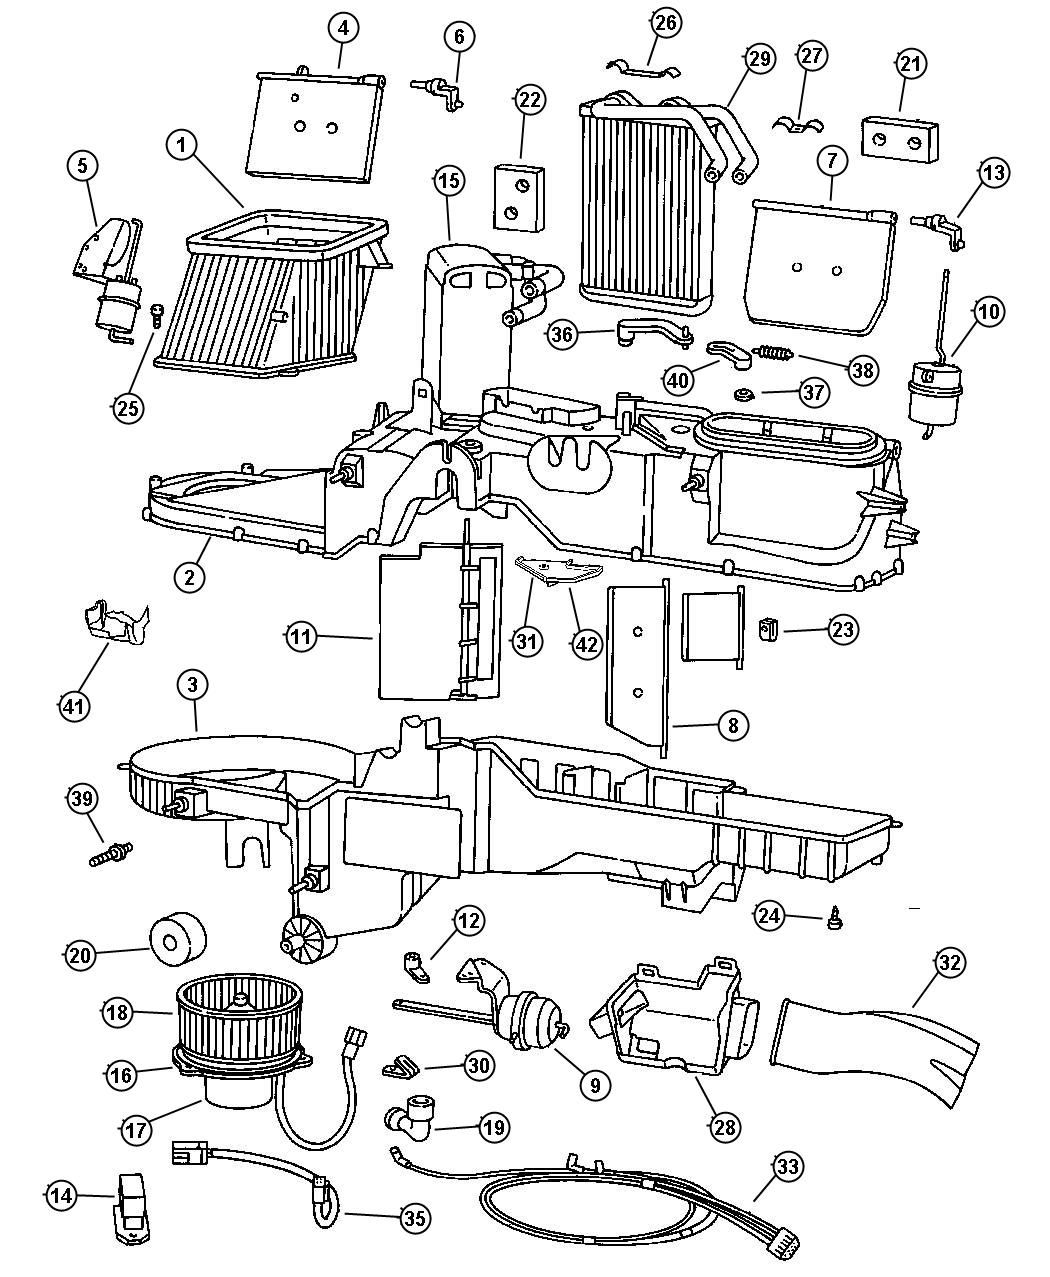 Dodge Ram Oem Parts Diagram